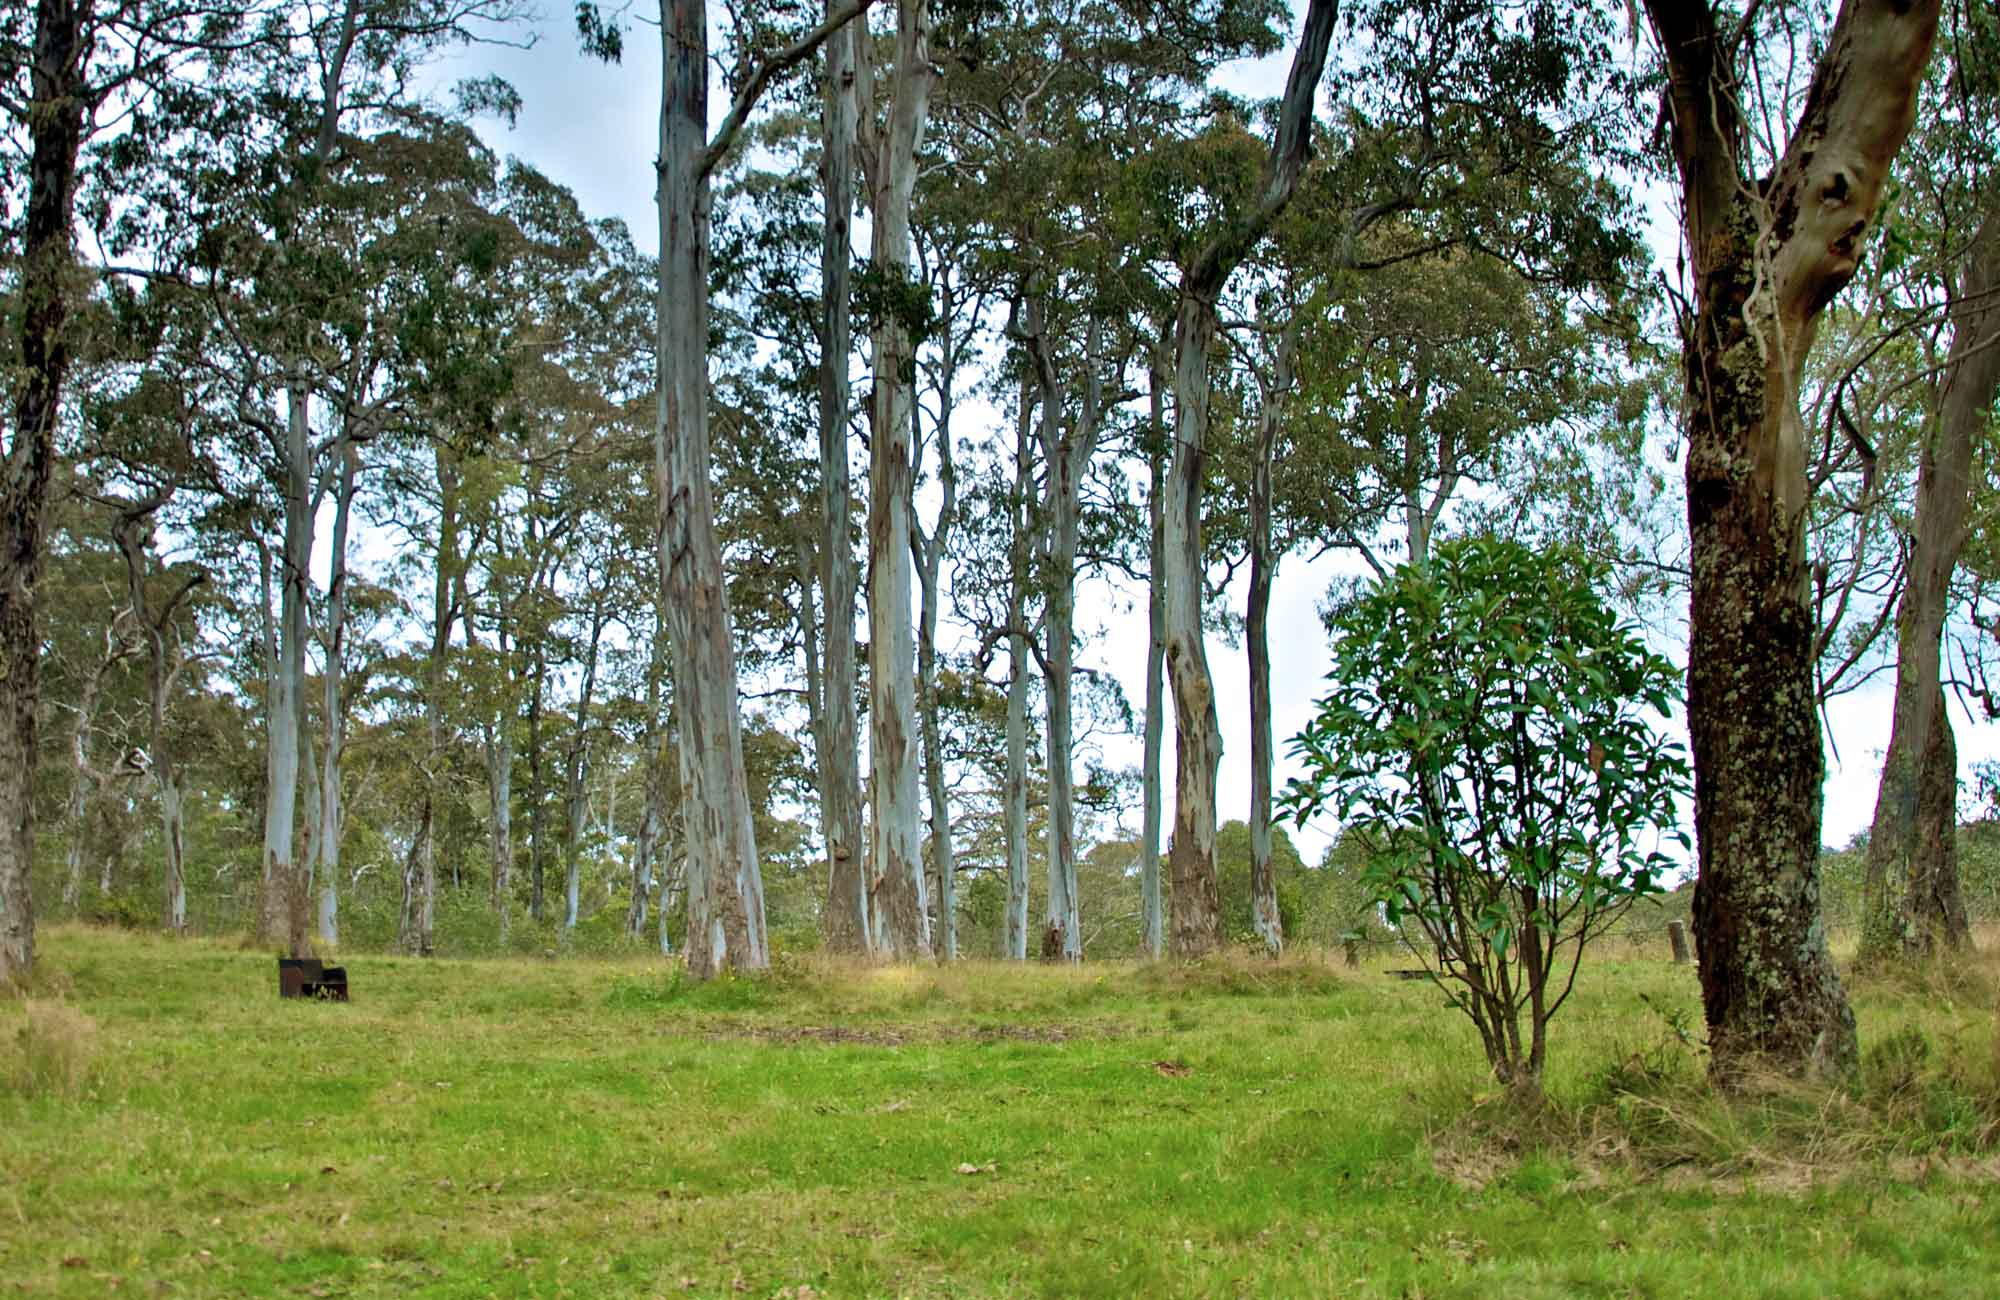 Campground nestled amoung the gum trees. Photo: John Spencer